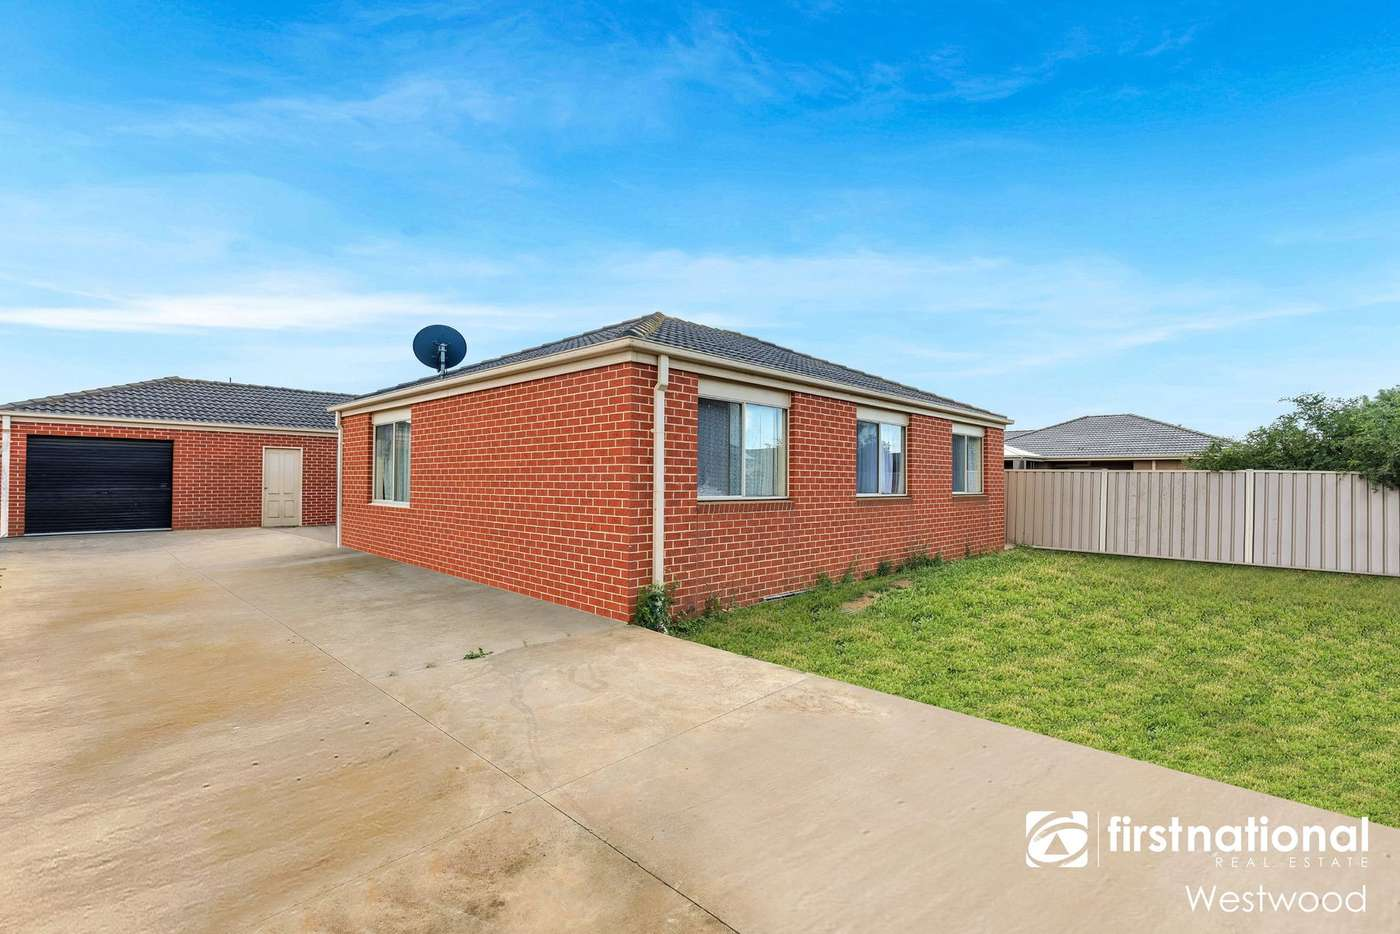 Fifth view of Homely house listing, 9 Tony Drive, Truganina VIC 3029